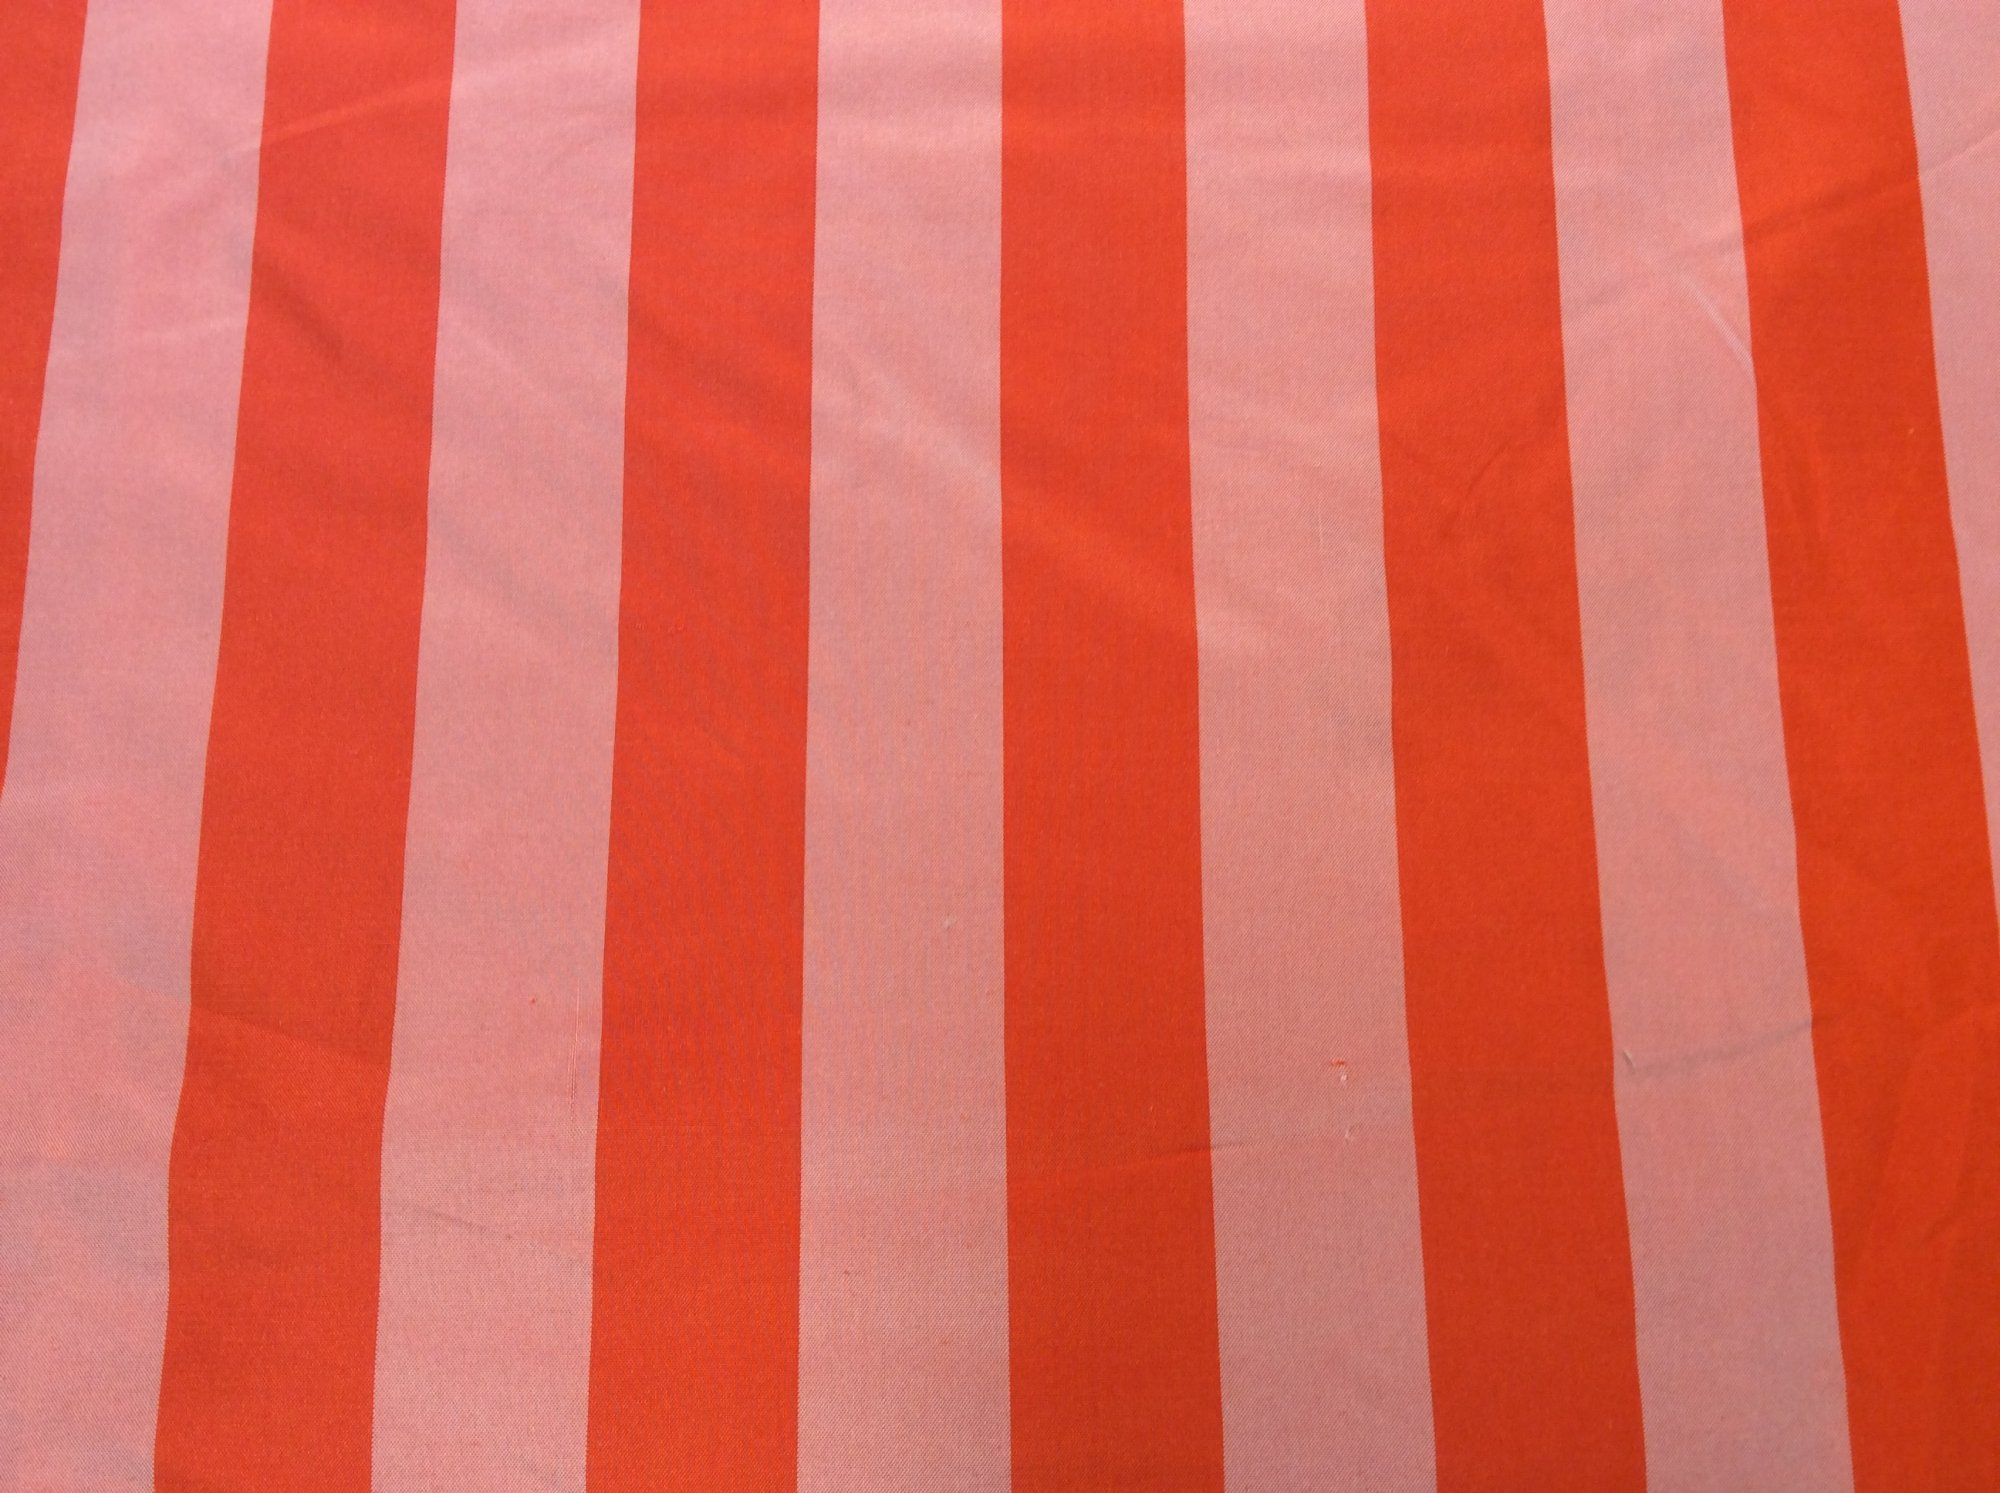 100% Silk Taffeta Coral Orange Stripe. Drapery Apparel Fabric. FM102